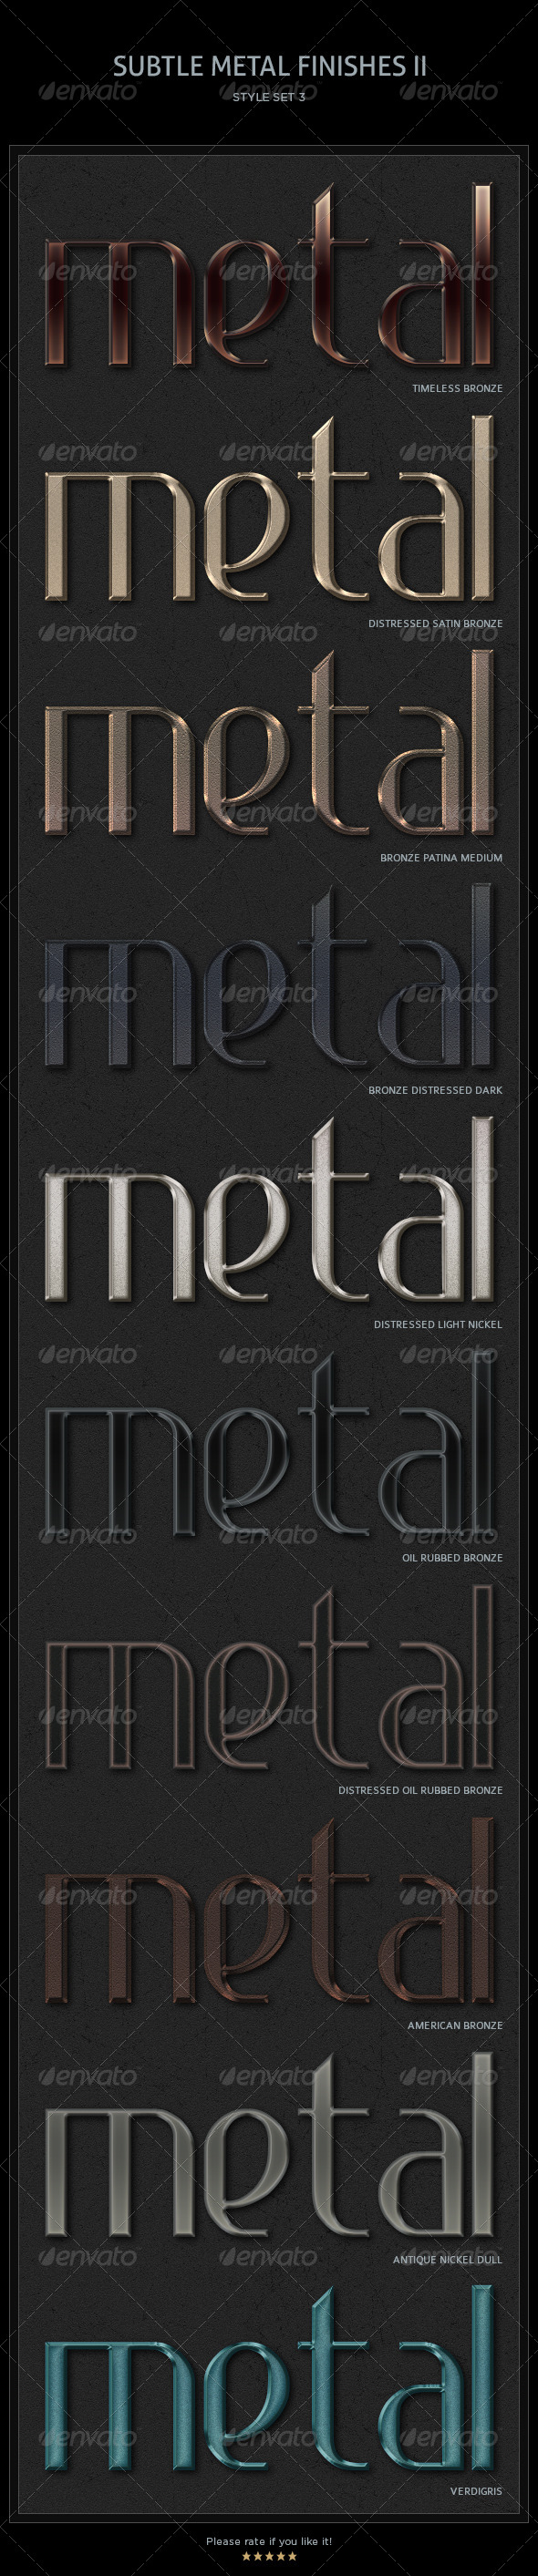 10 Subtle Metal Finishes II Text Styles - Text Effects Styles